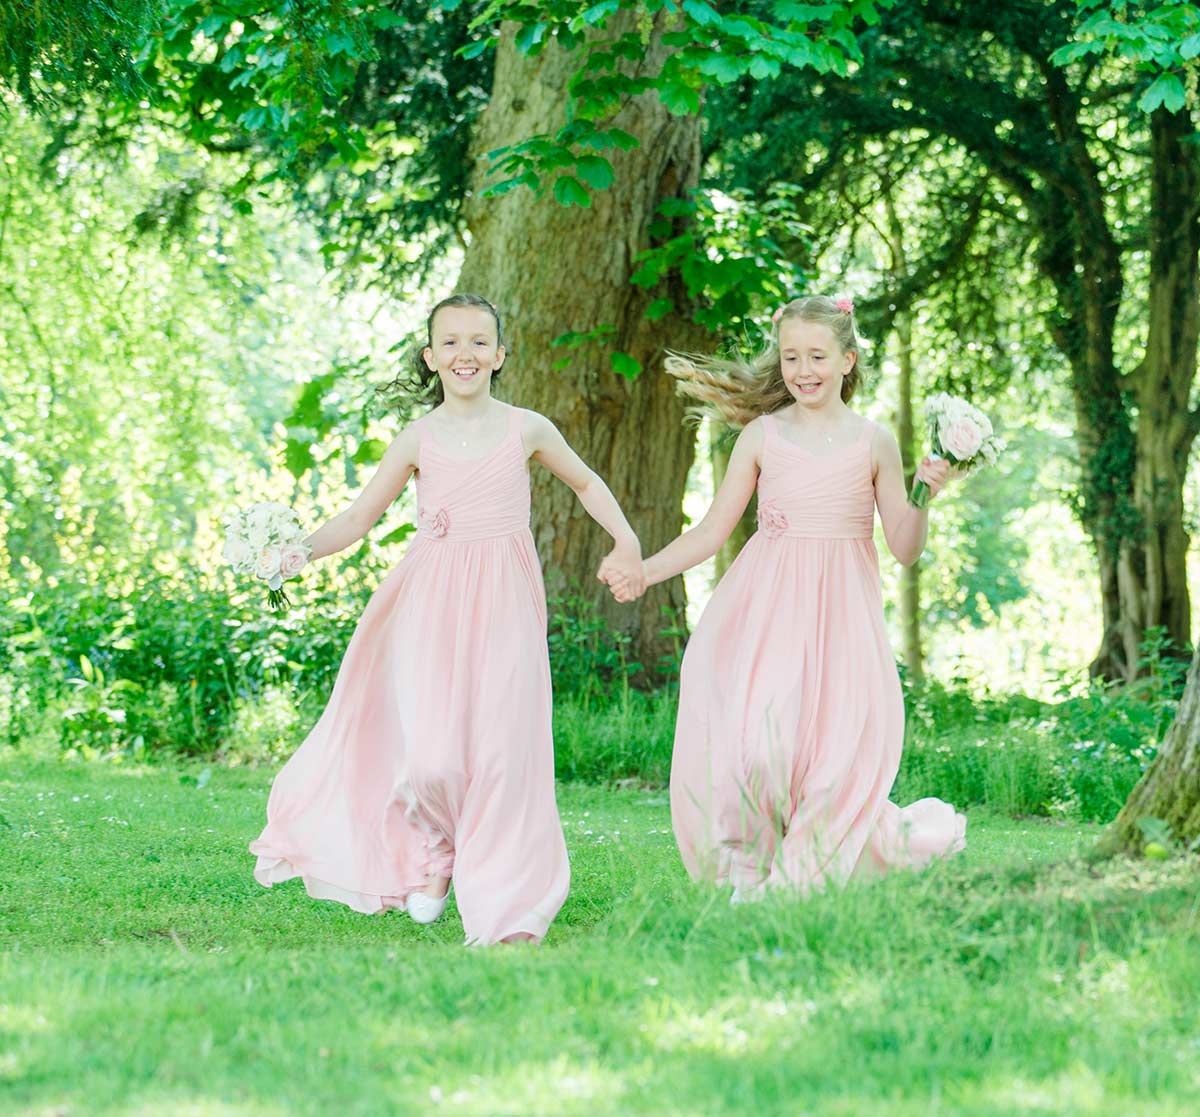 Flower girls running around, how long does a wedding photographer stay